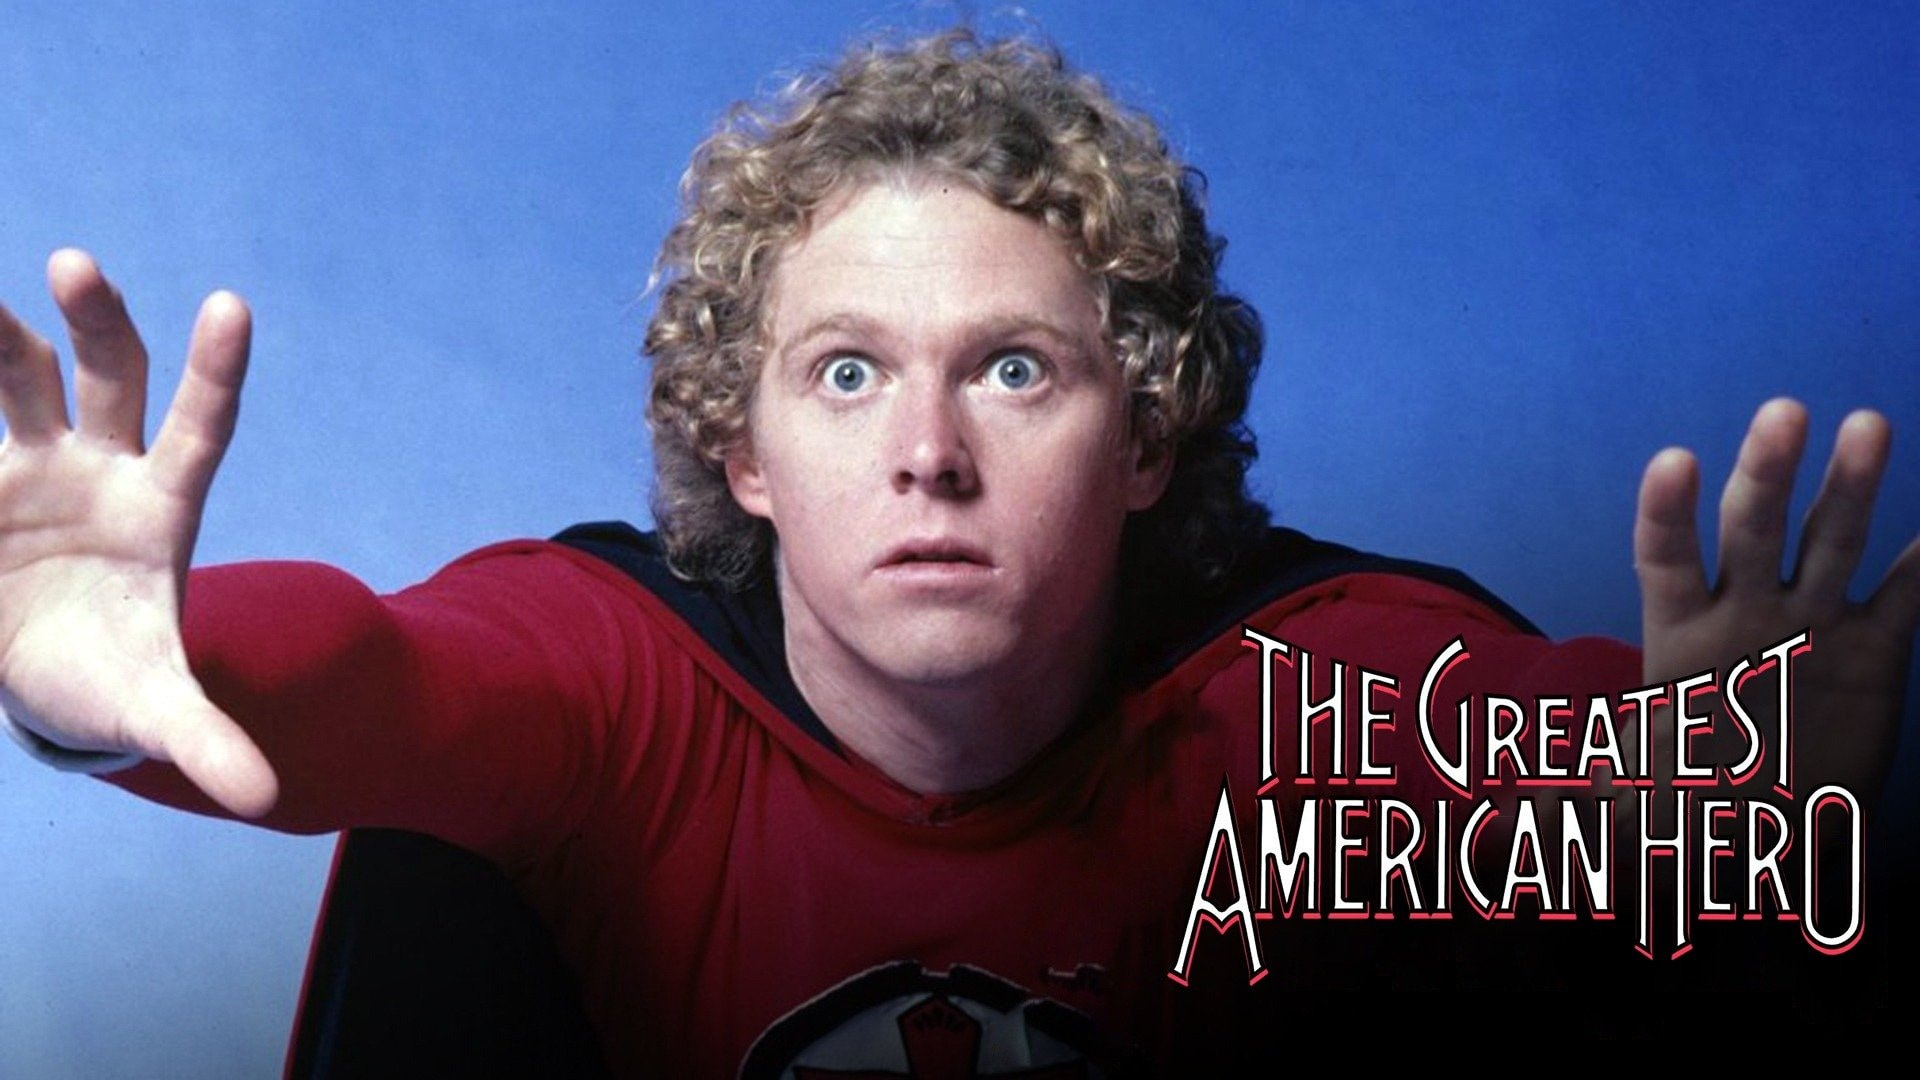 The Greatest American Hero (Episodes 1 & 2)